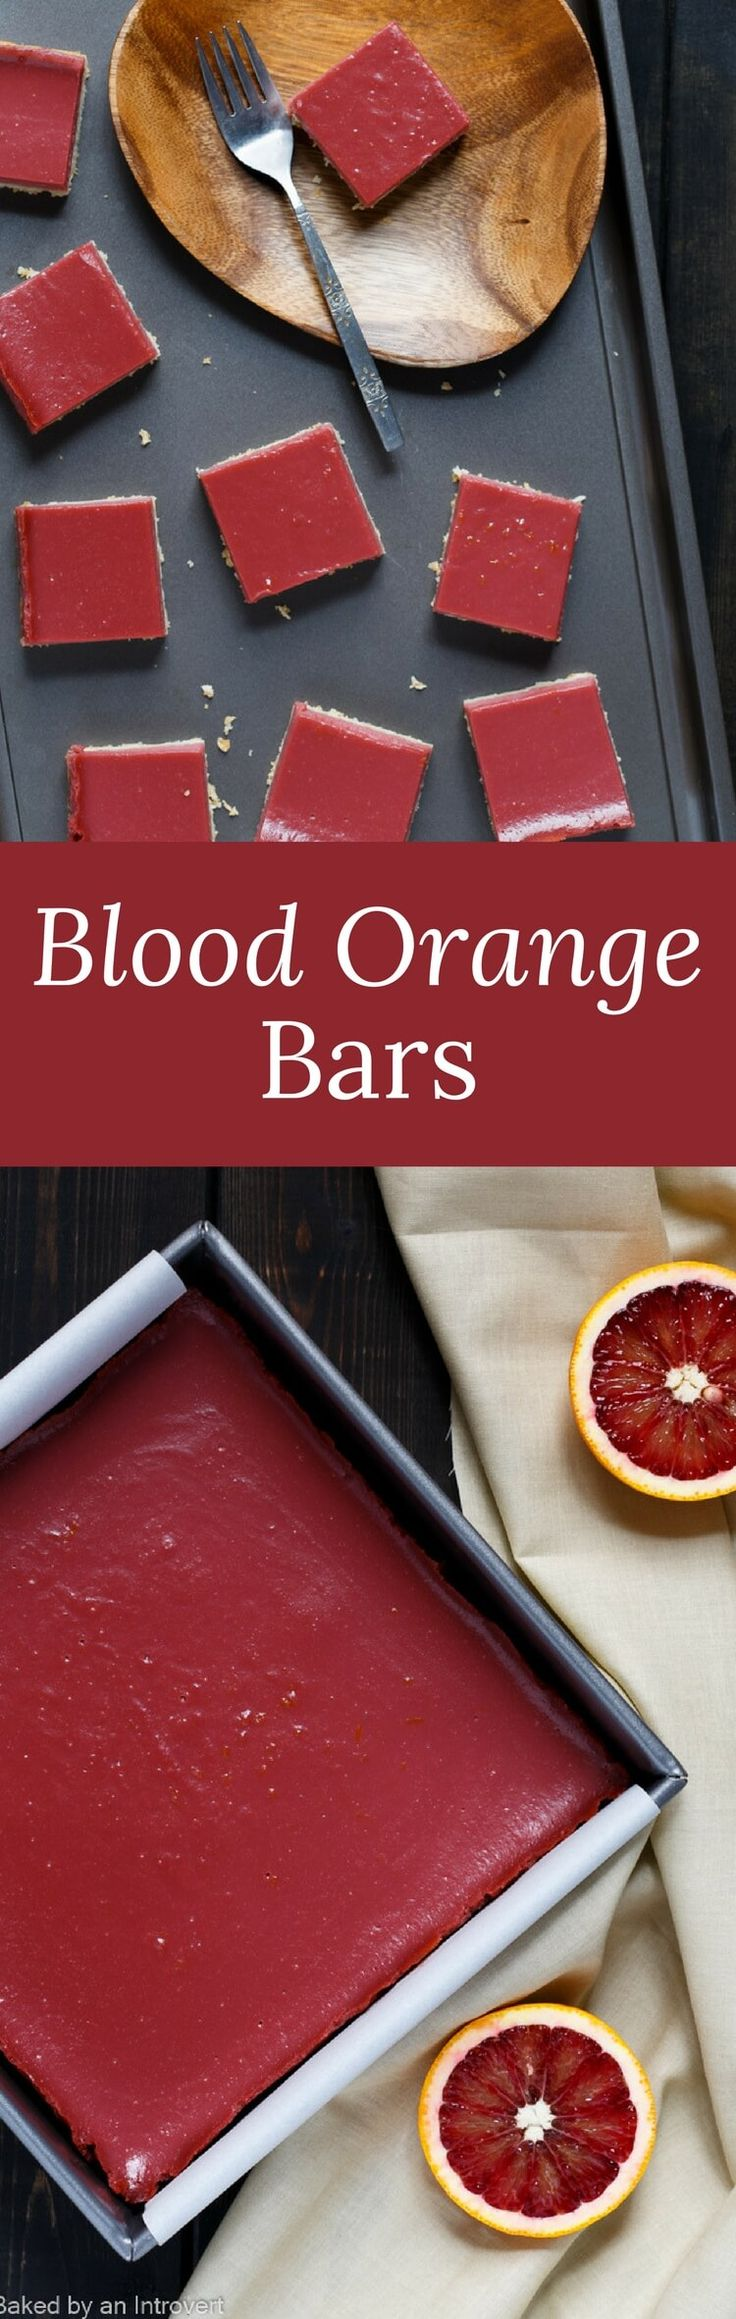 Blood Orange Bars are a less tangy version of lemon bars. They are vibrant, full of orange flavor, and rest on a buttery shortbread crust. via @introvertbaker